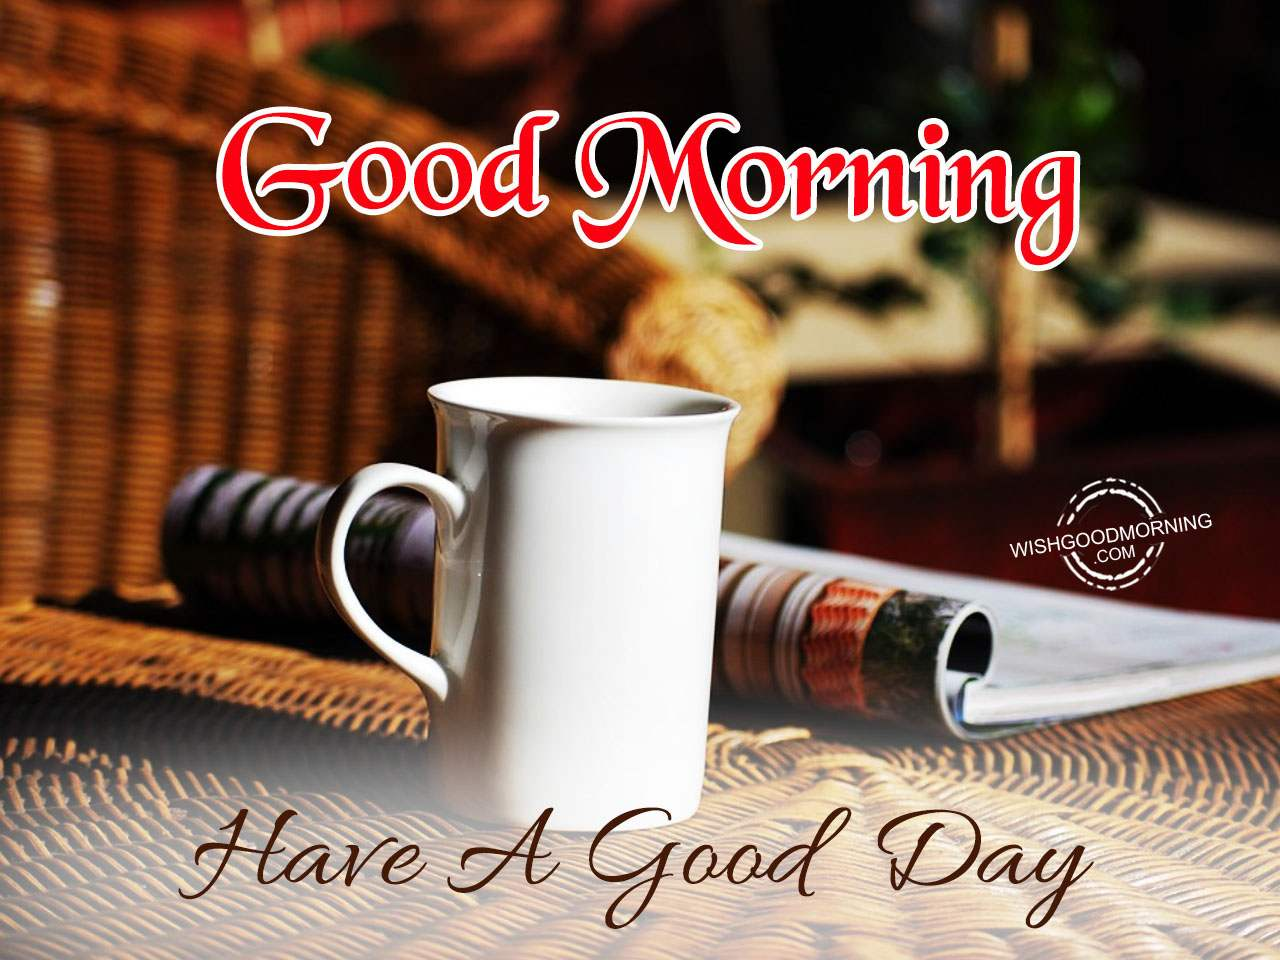 Have A Nice And Beautiful Day Good Morning Good Morning Pictures Wishgoodmorning Com